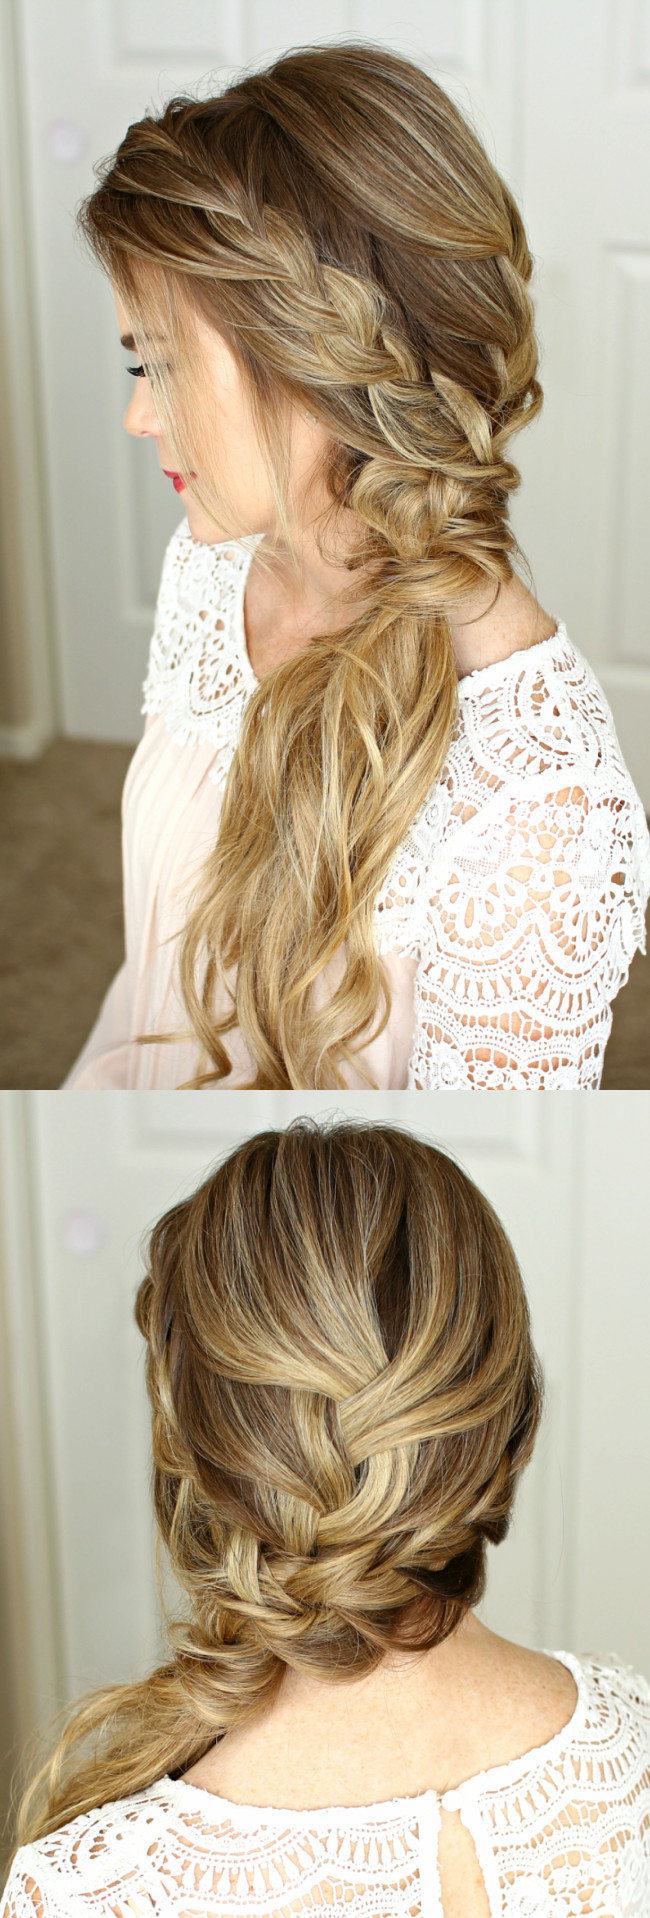 Prom Hairstyle Braid  Braided Side Swept Prom Hairstyle